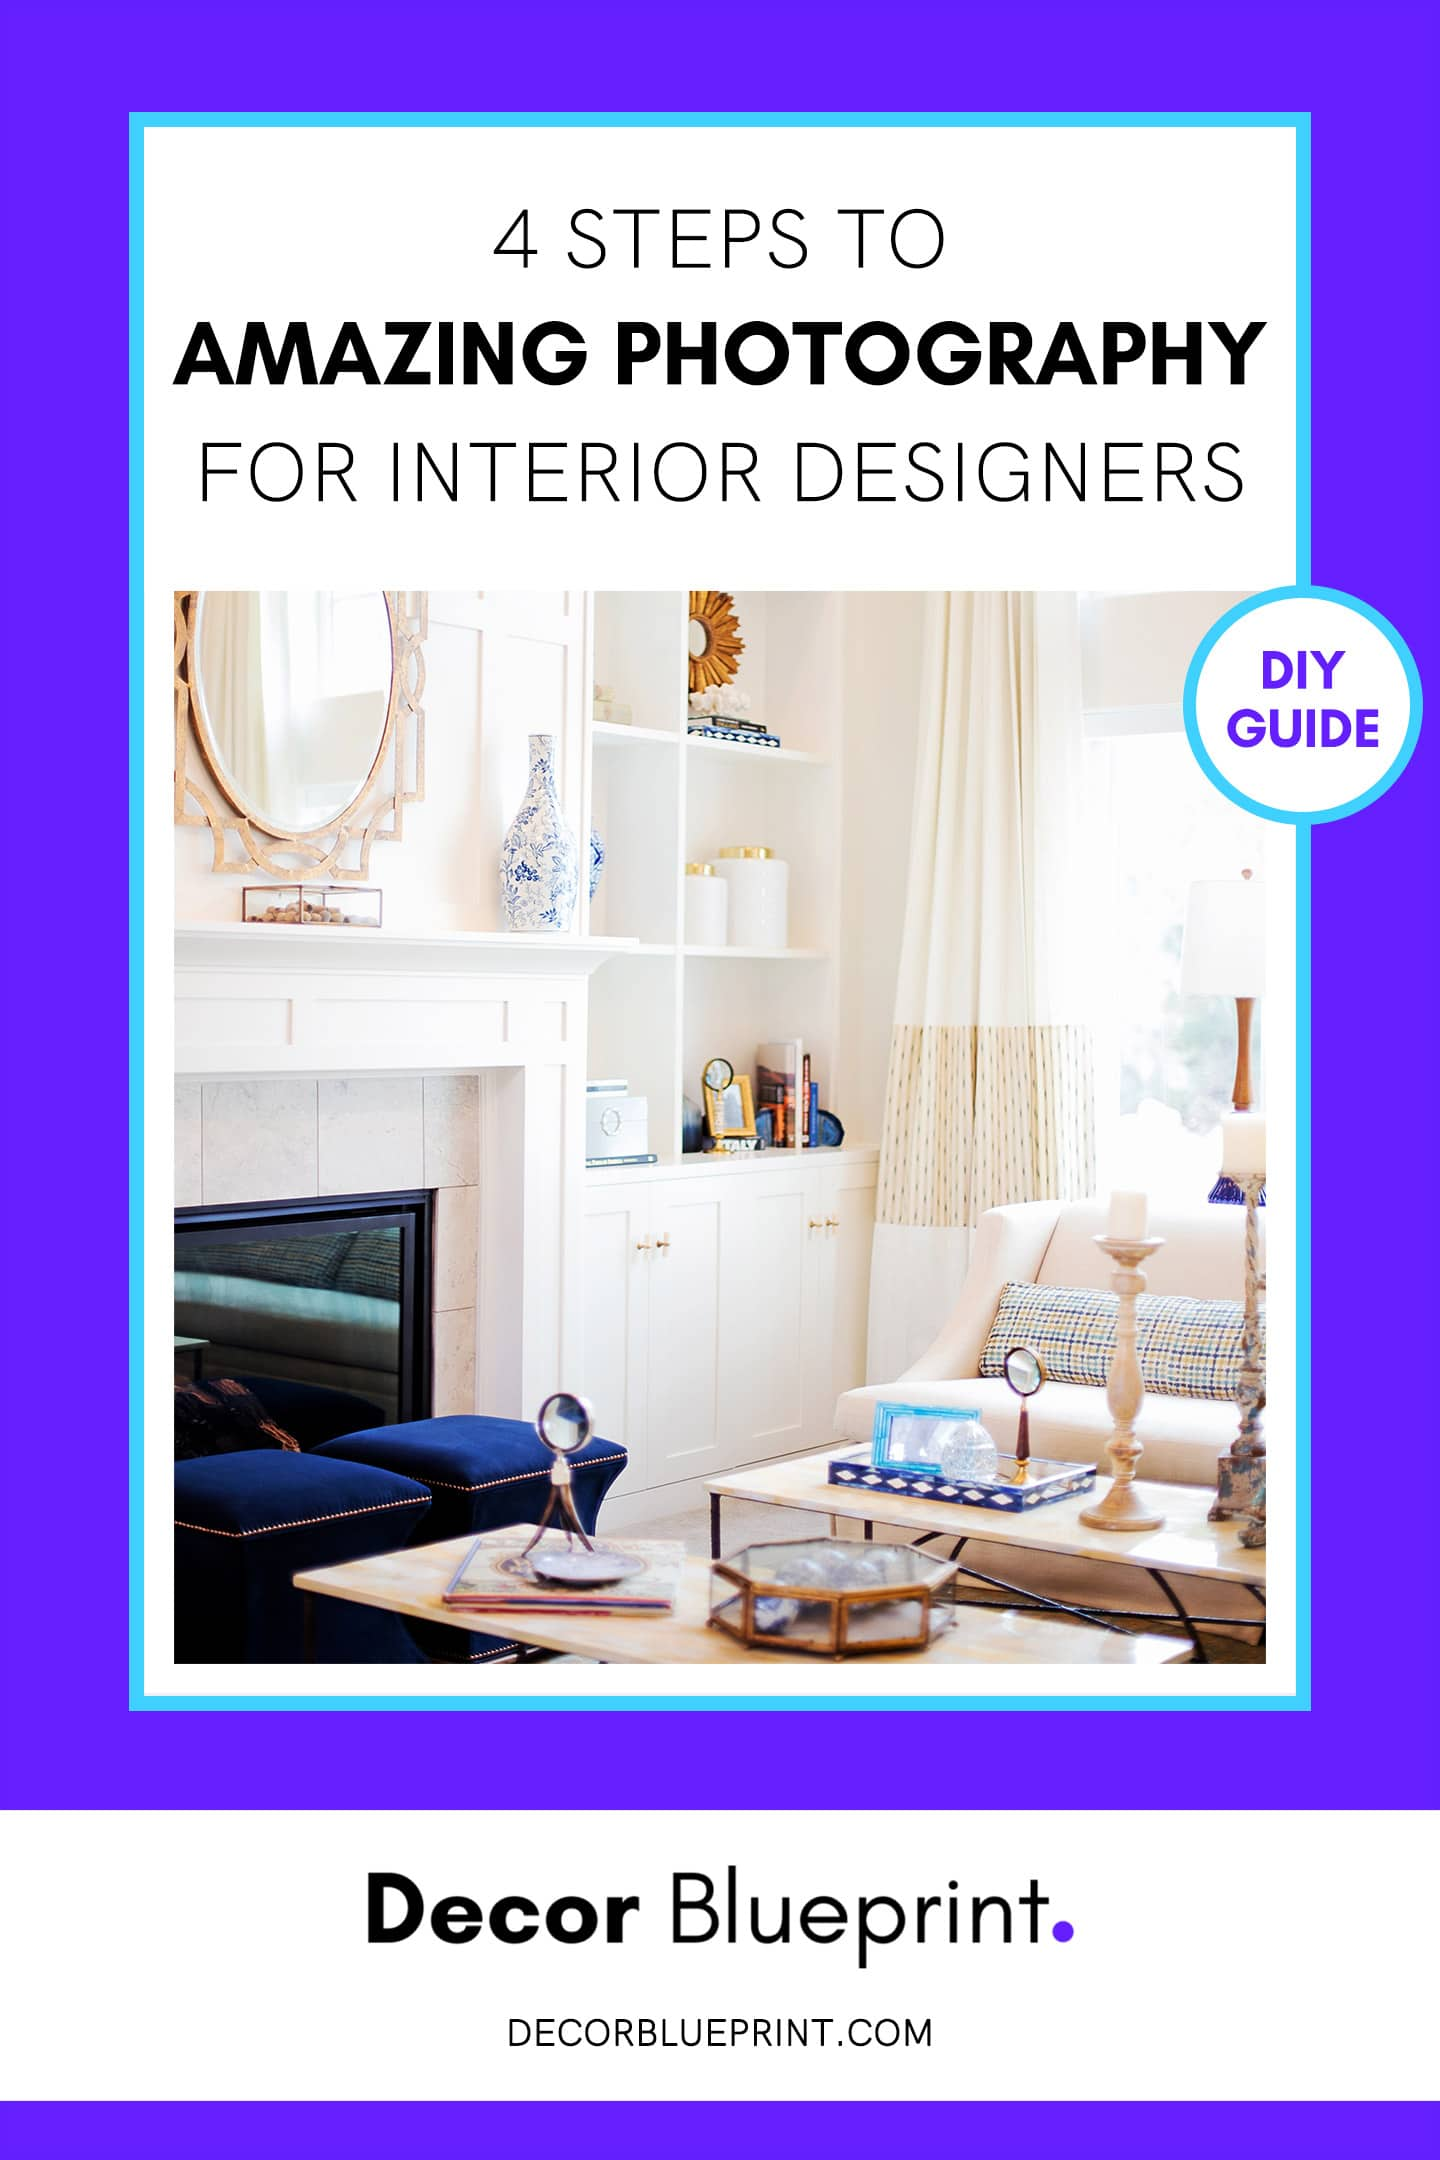 4 steps to amazing photography for interior designers